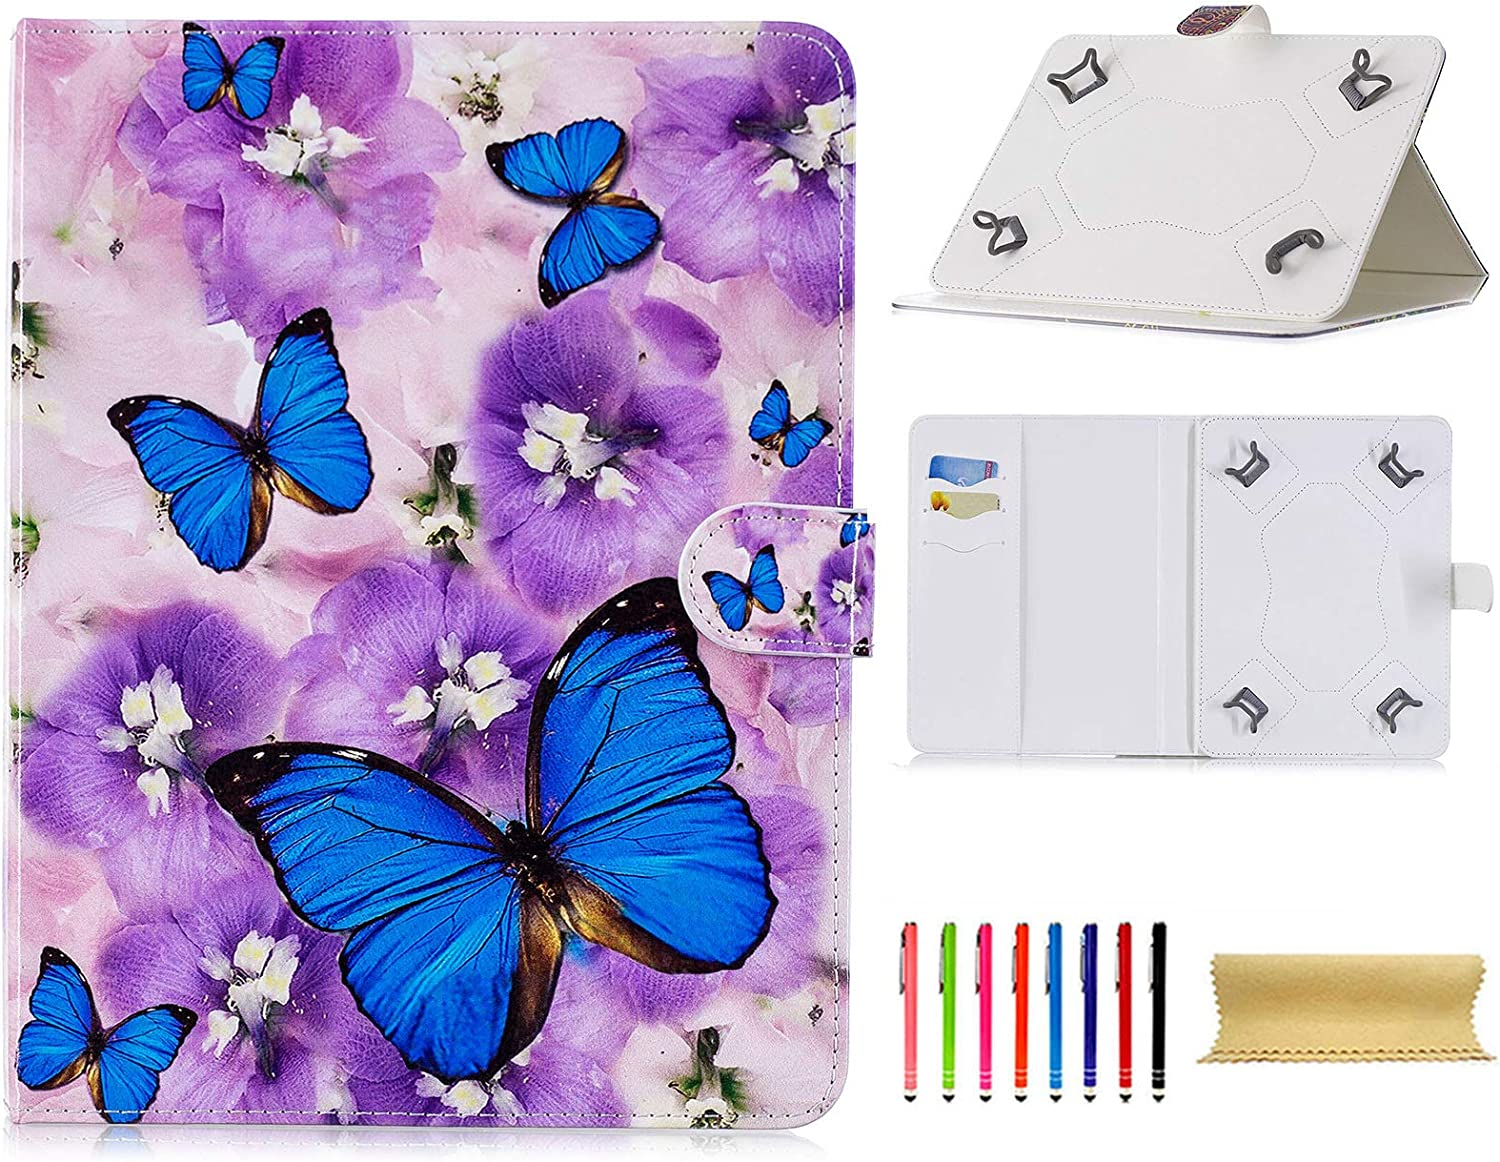 """Universal Case for 7.5-8.5 Inch Tablet, Techcircle Slim PU Leather Folio Flip Stand Wallet Case for iPad Mini 1/2/3/4, Fire HD 8, Galaxy Tab 8.0 Series & Other 7.5""""-8.5"""" Tablet, Blue Butterfly"""